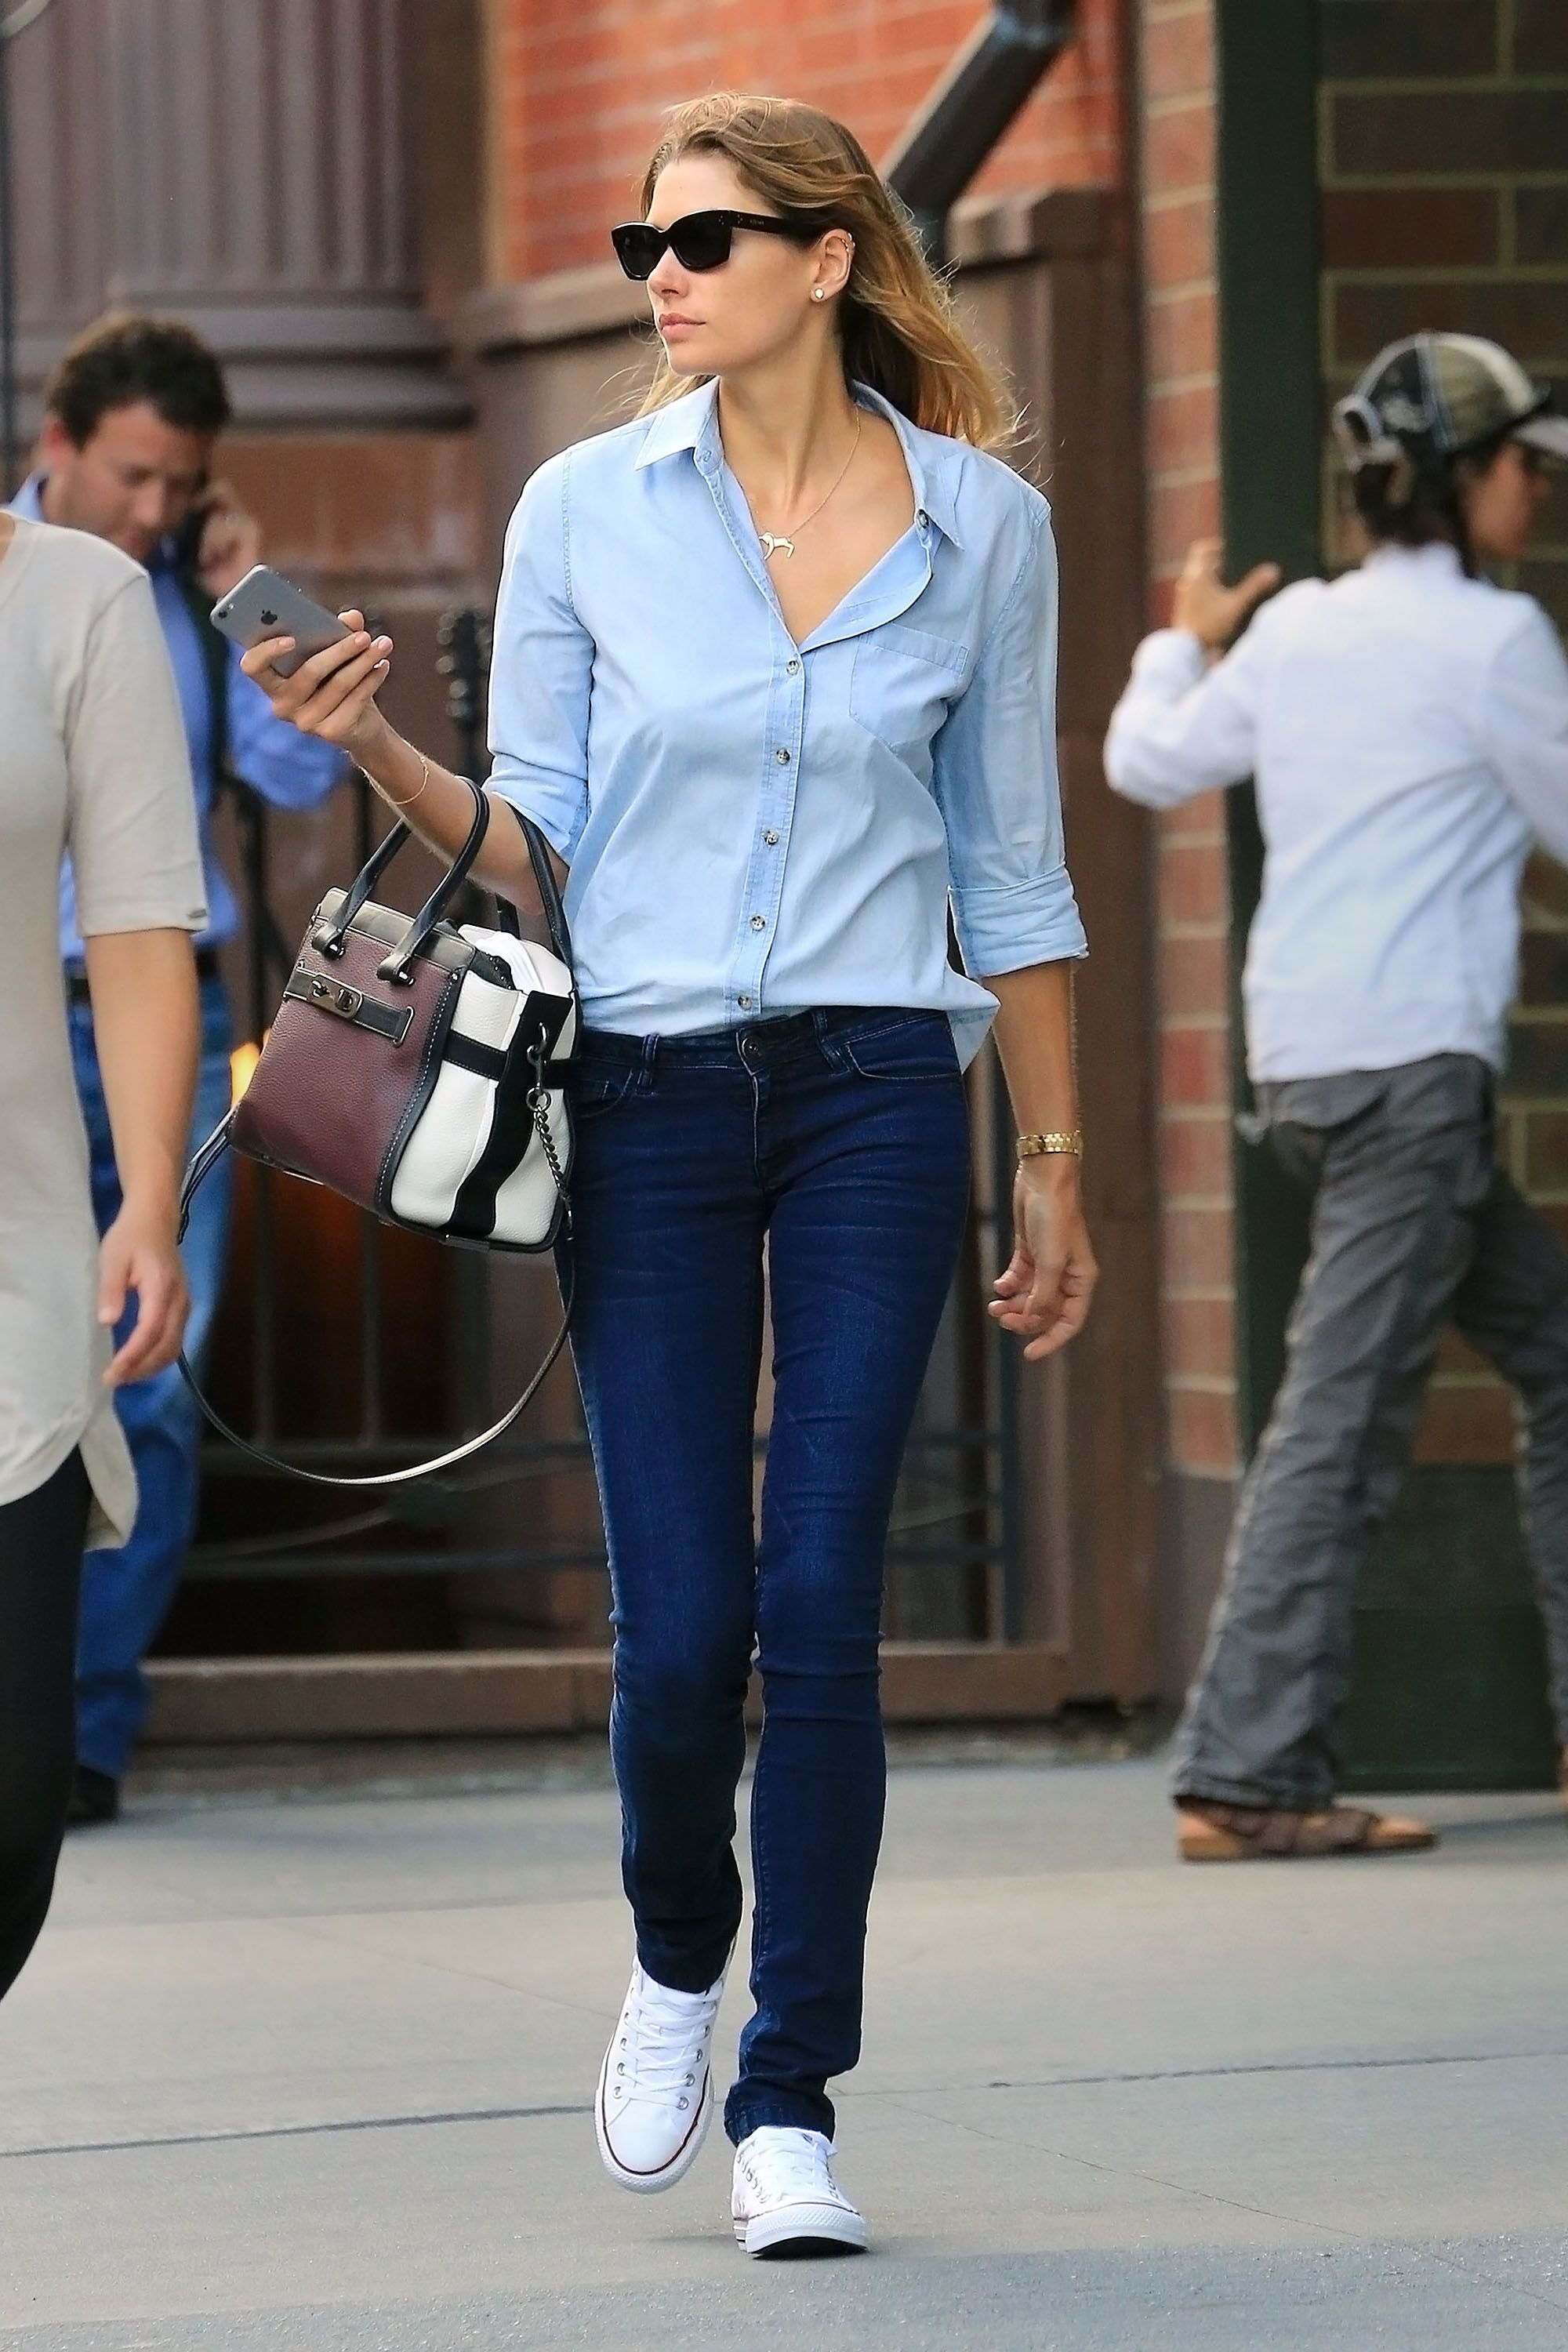 Aussie model Jessica Hart looks effortless for a walk around in the city in perfect blue jeans and buttom down shirt, and sneakers.